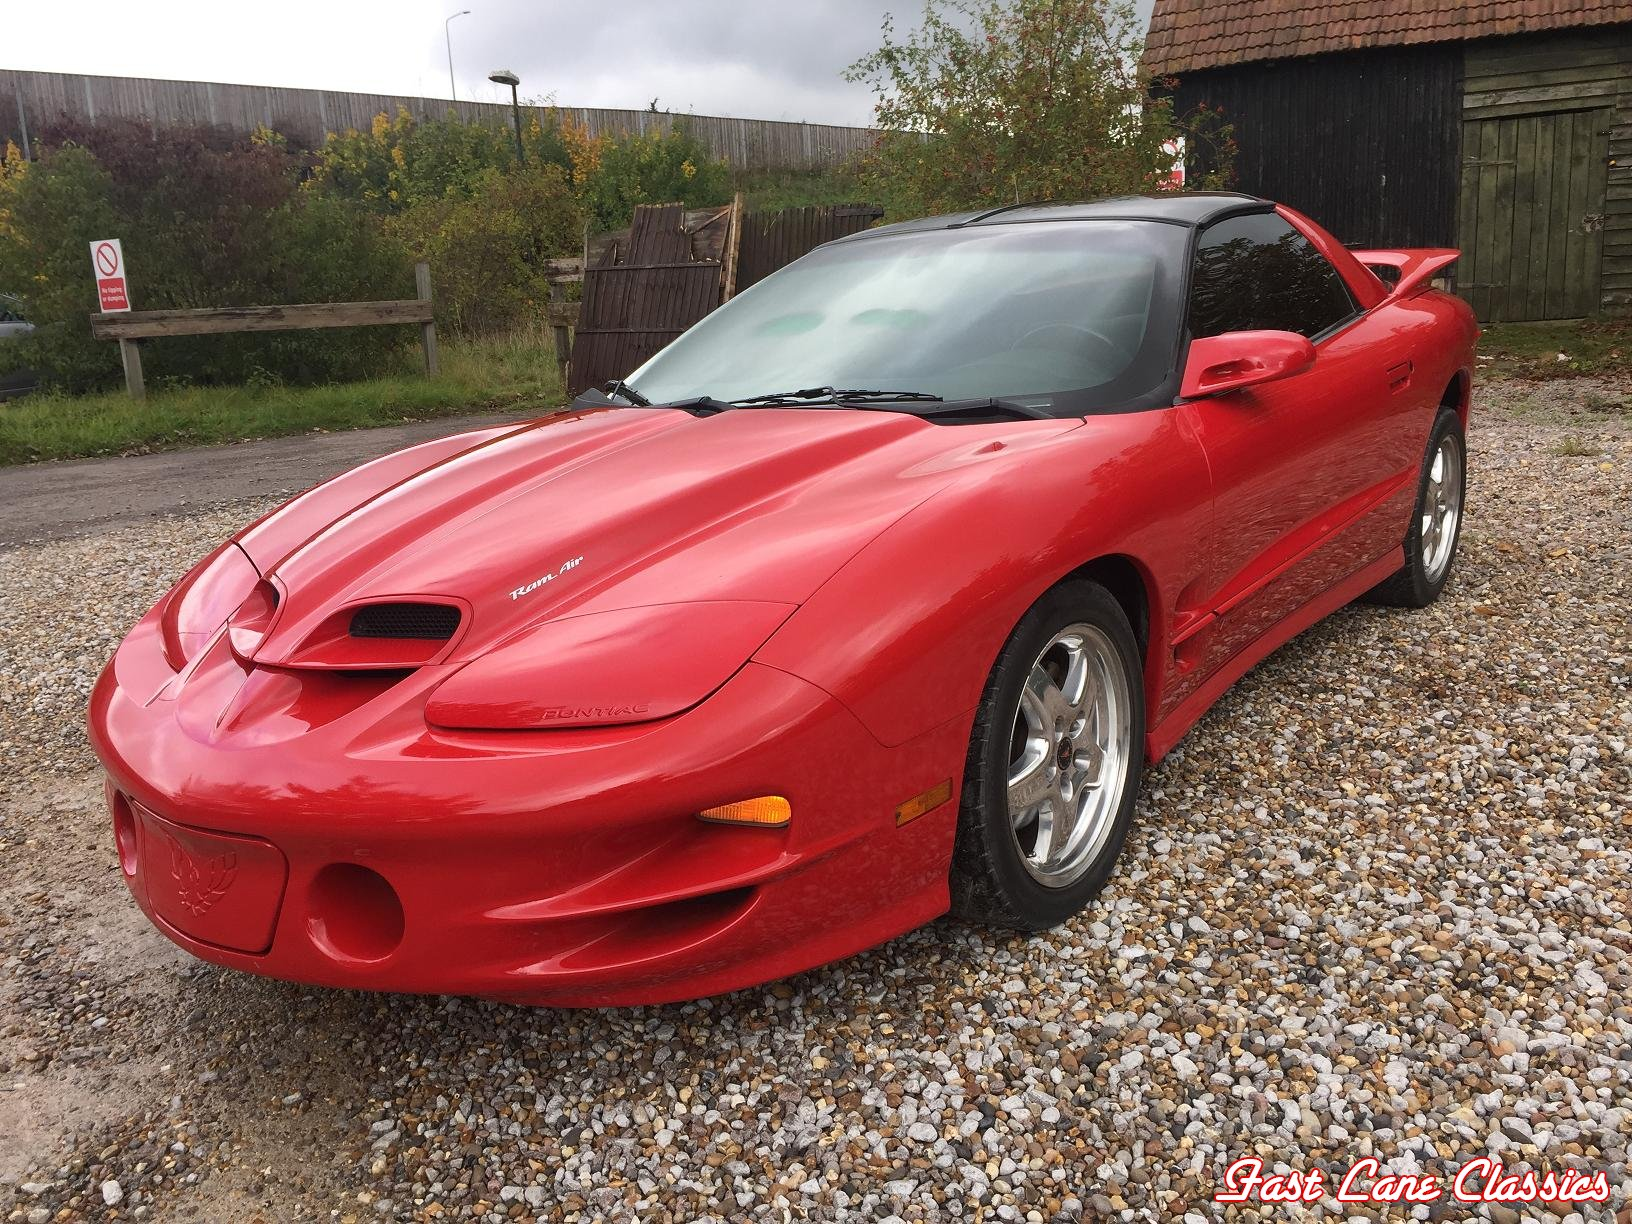 2002 pontiac firebird ws6 for sale by fast lane classics fast lane classics. Black Bedroom Furniture Sets. Home Design Ideas